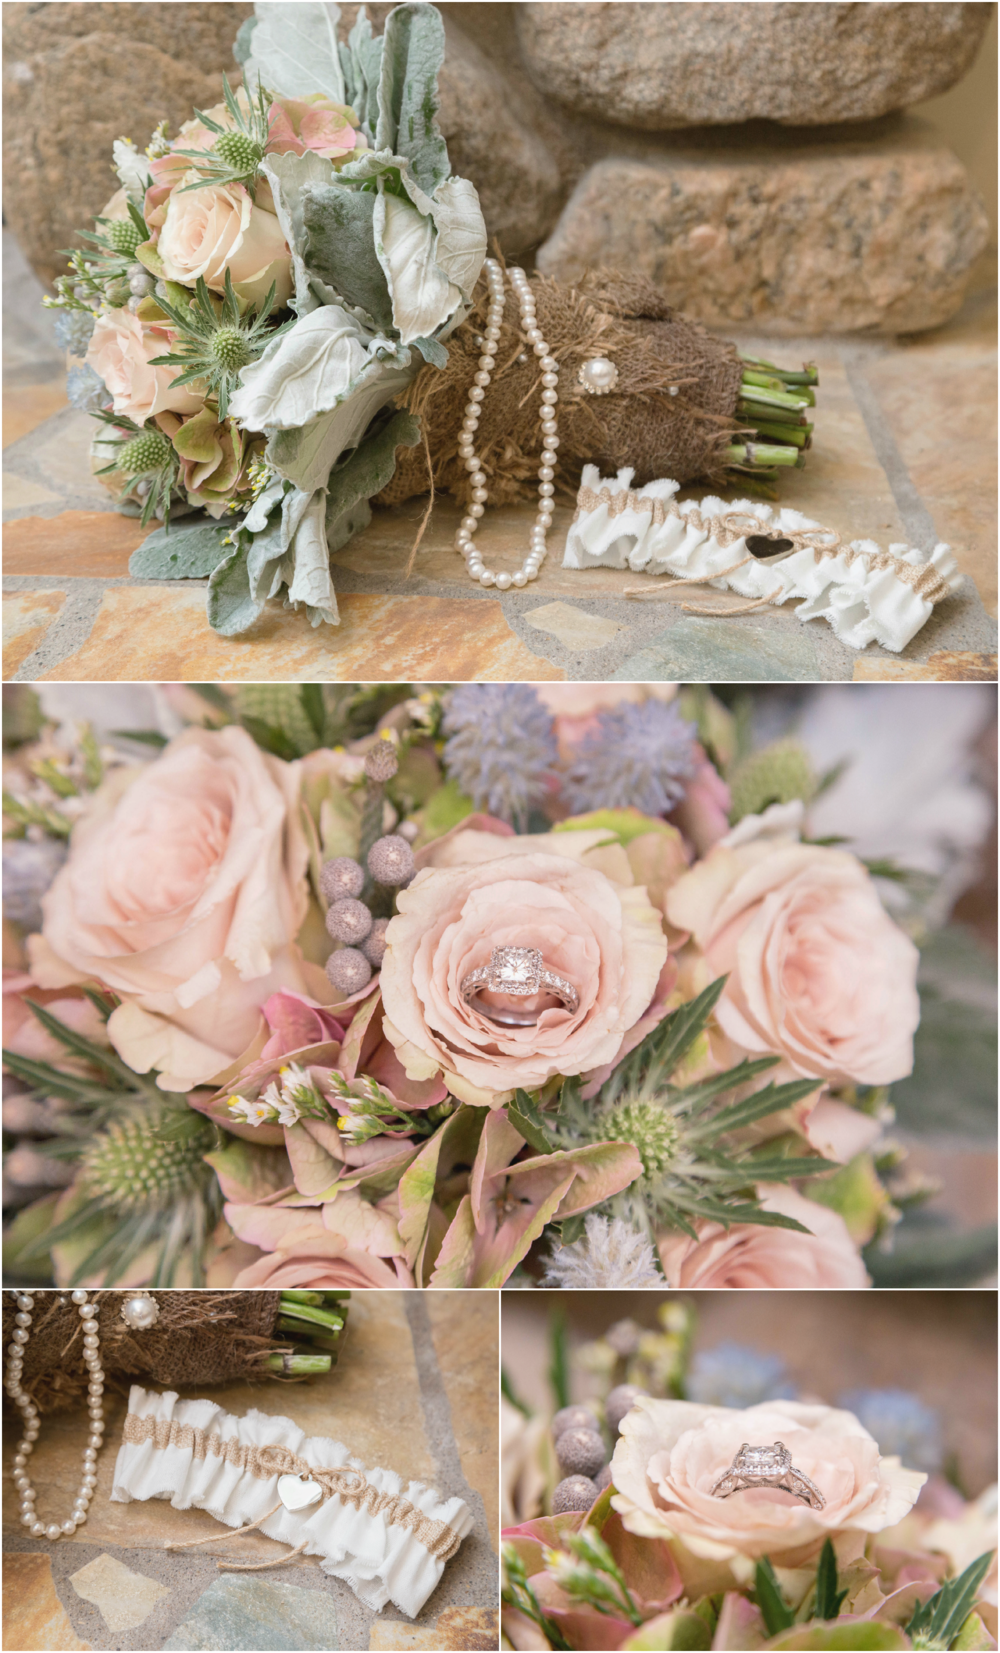 elkwater_wedding_photography_02.png